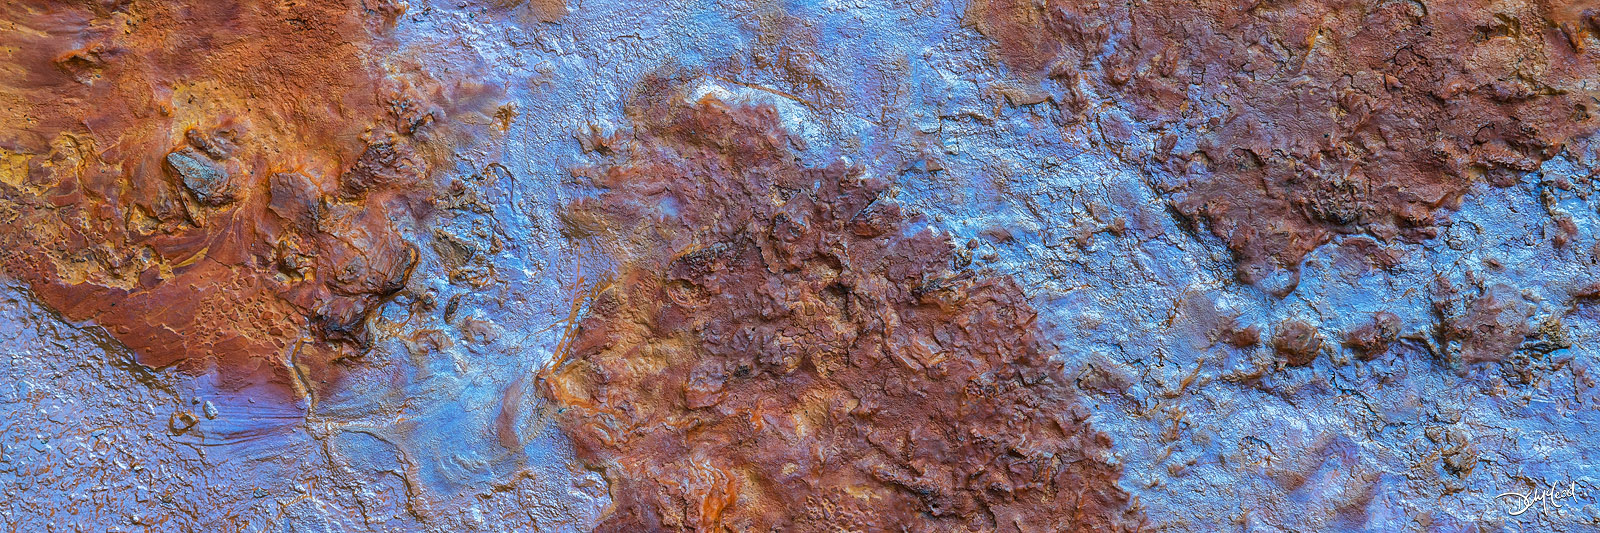 Brown and blue colors in mineral rich wet soil at the Paint Pots, Kootenay NP, BC, Canada.